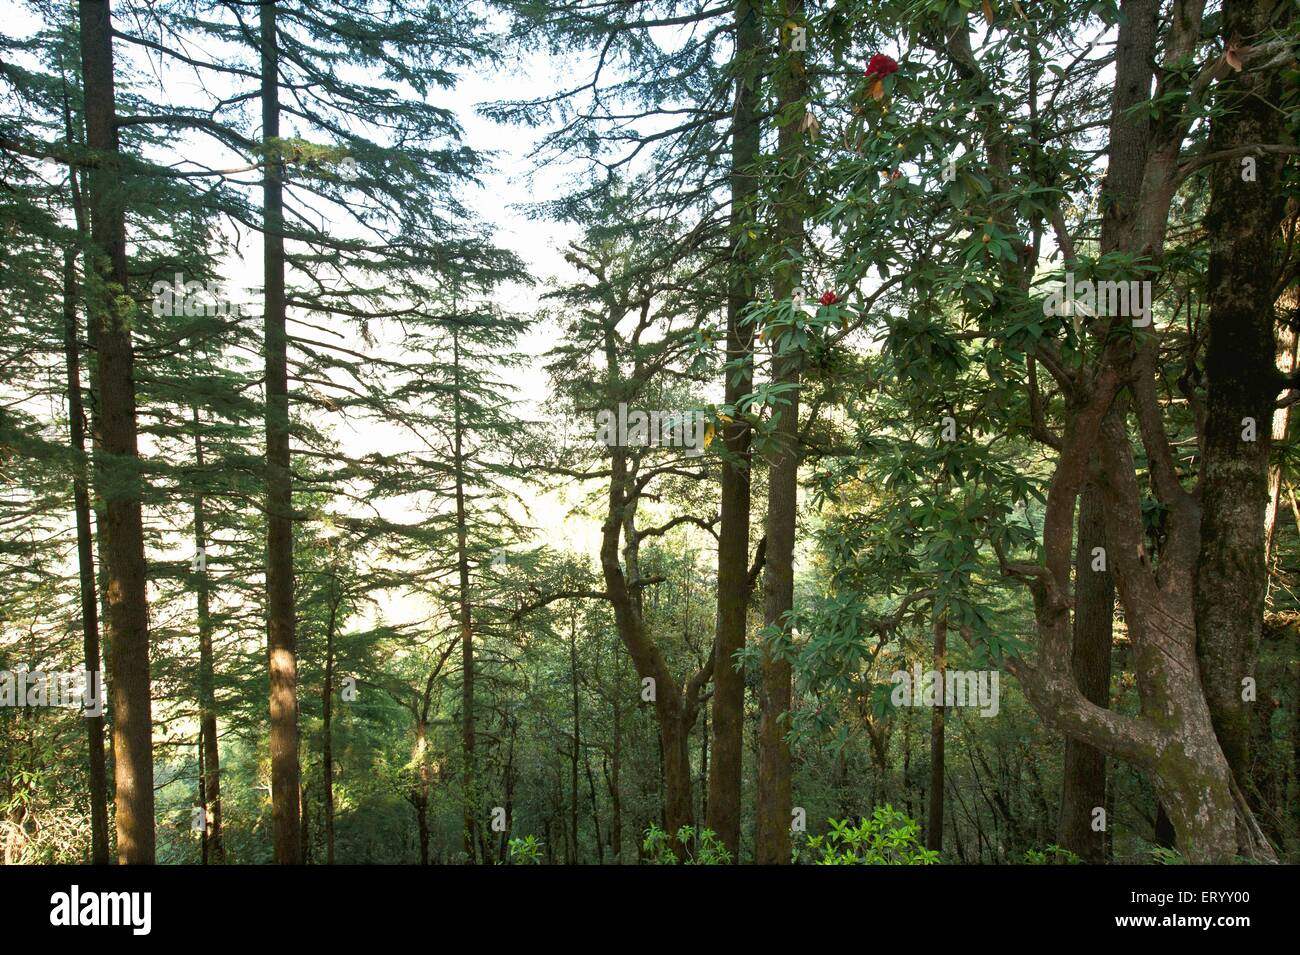 Pine tree forest at dhanaulti Uttaranchal Uttarakhand India - Stock Image